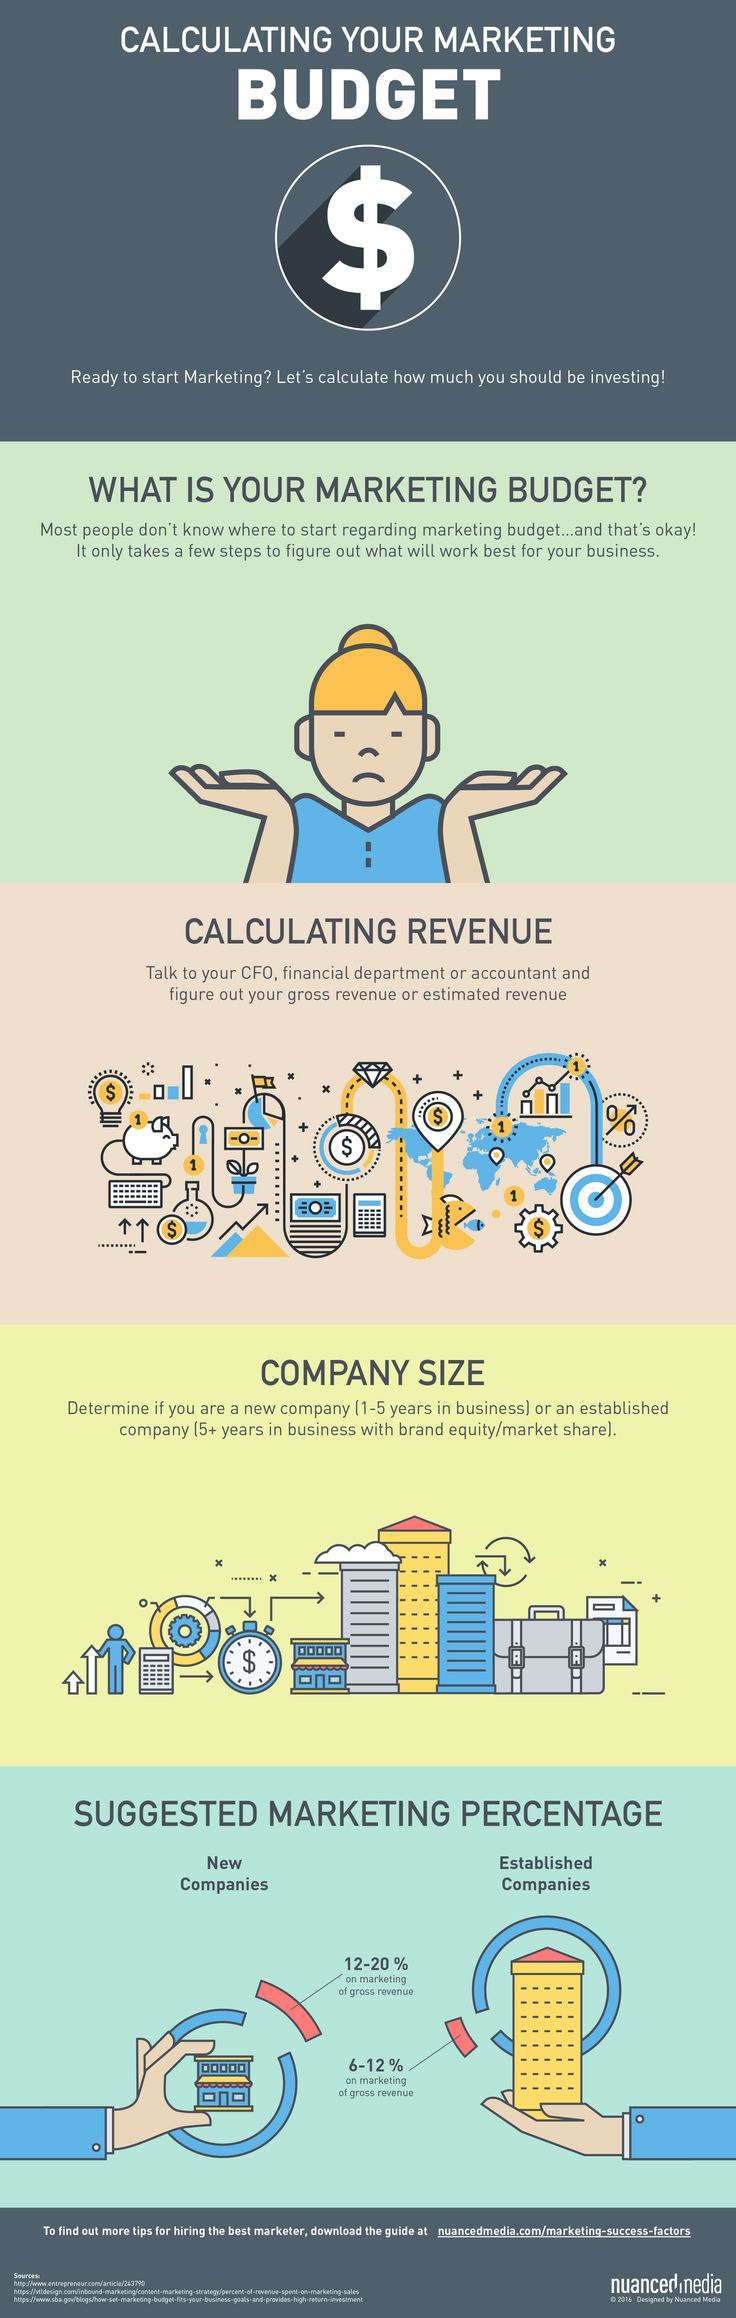 Calculating Your Marketing Budget - Don't know where to start when it comes to preparing a marketing budget? Great infographic shows how to figure out what works best for your business.